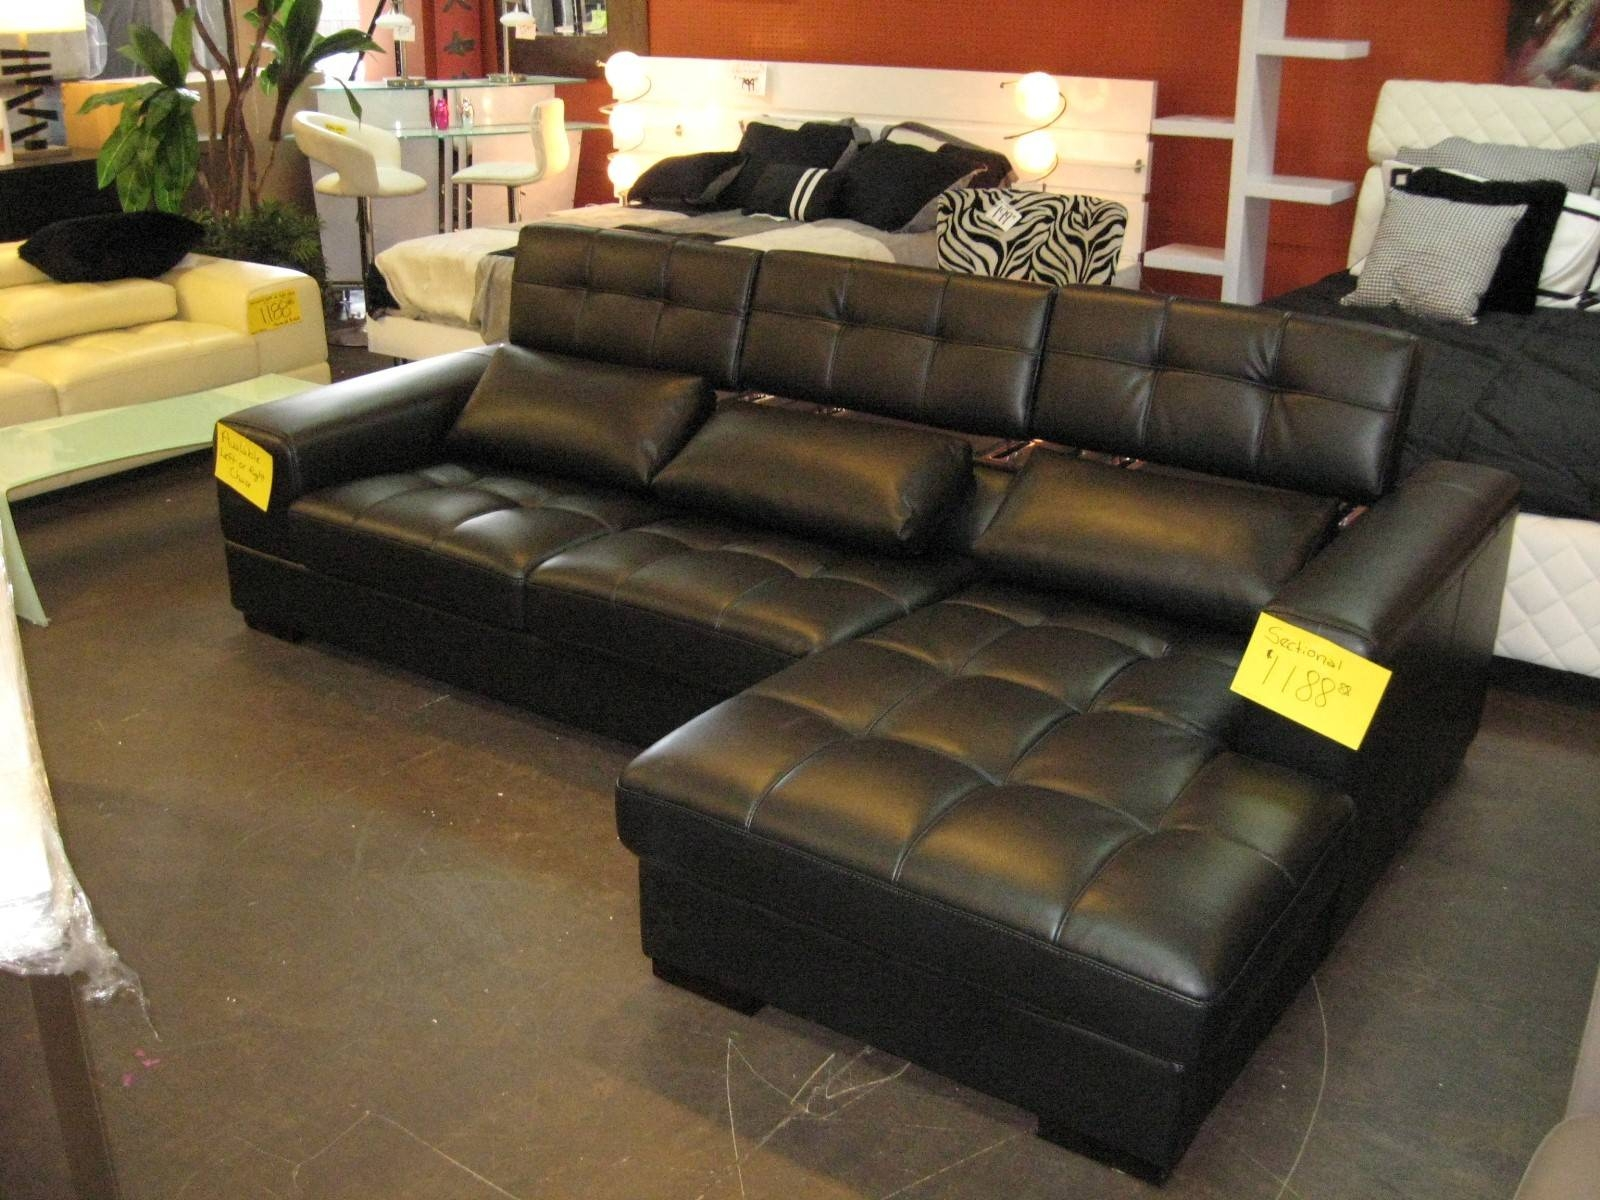 Furniture & Rug: Cheap Sectional Couches For Home Furniture Idea with regard to Leather Modular Sectional Sofas (Image 4 of 30)